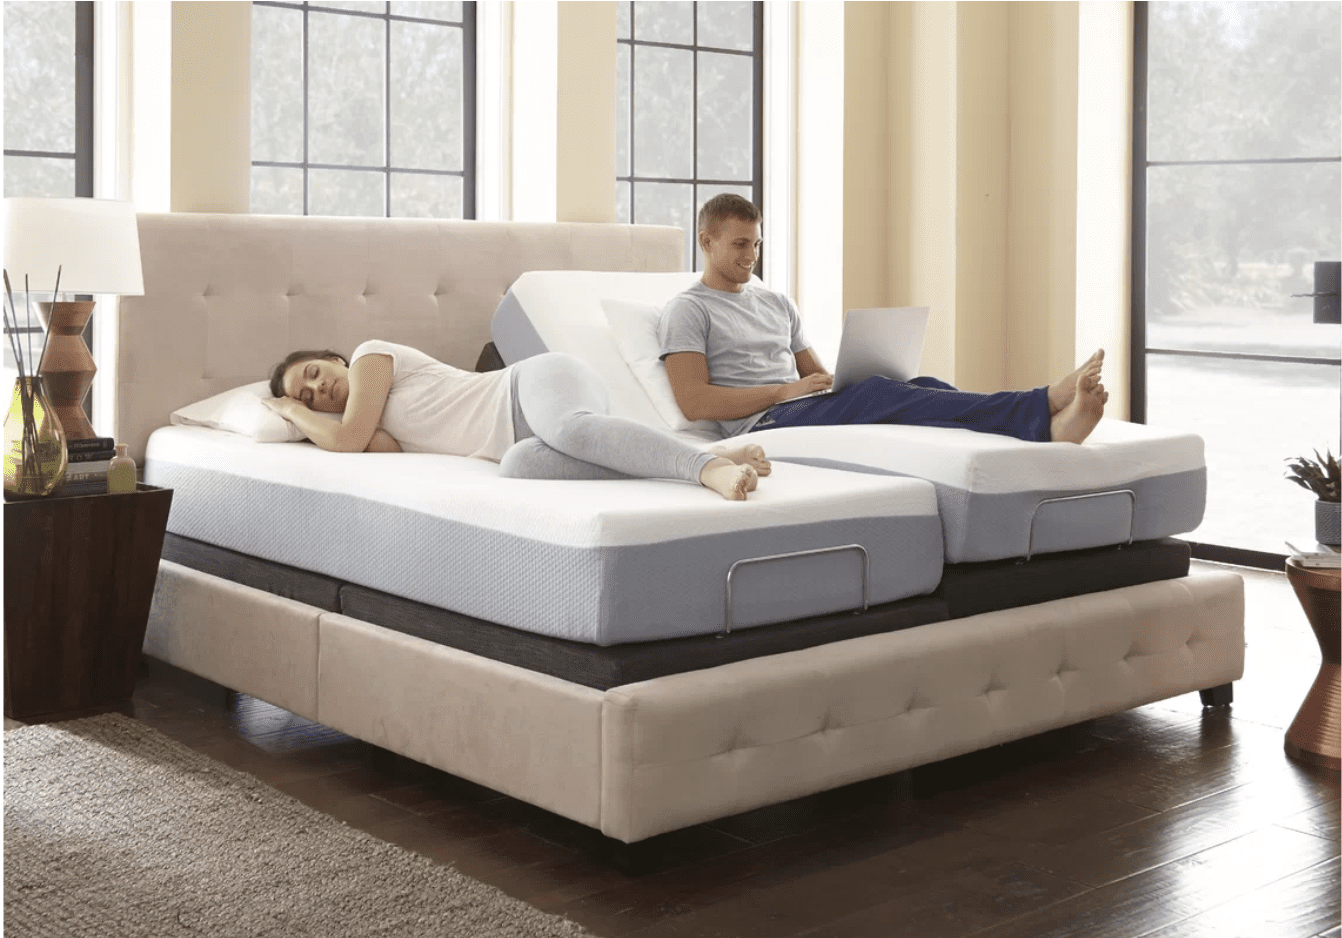 The 7 Best Adjustable Beds Of